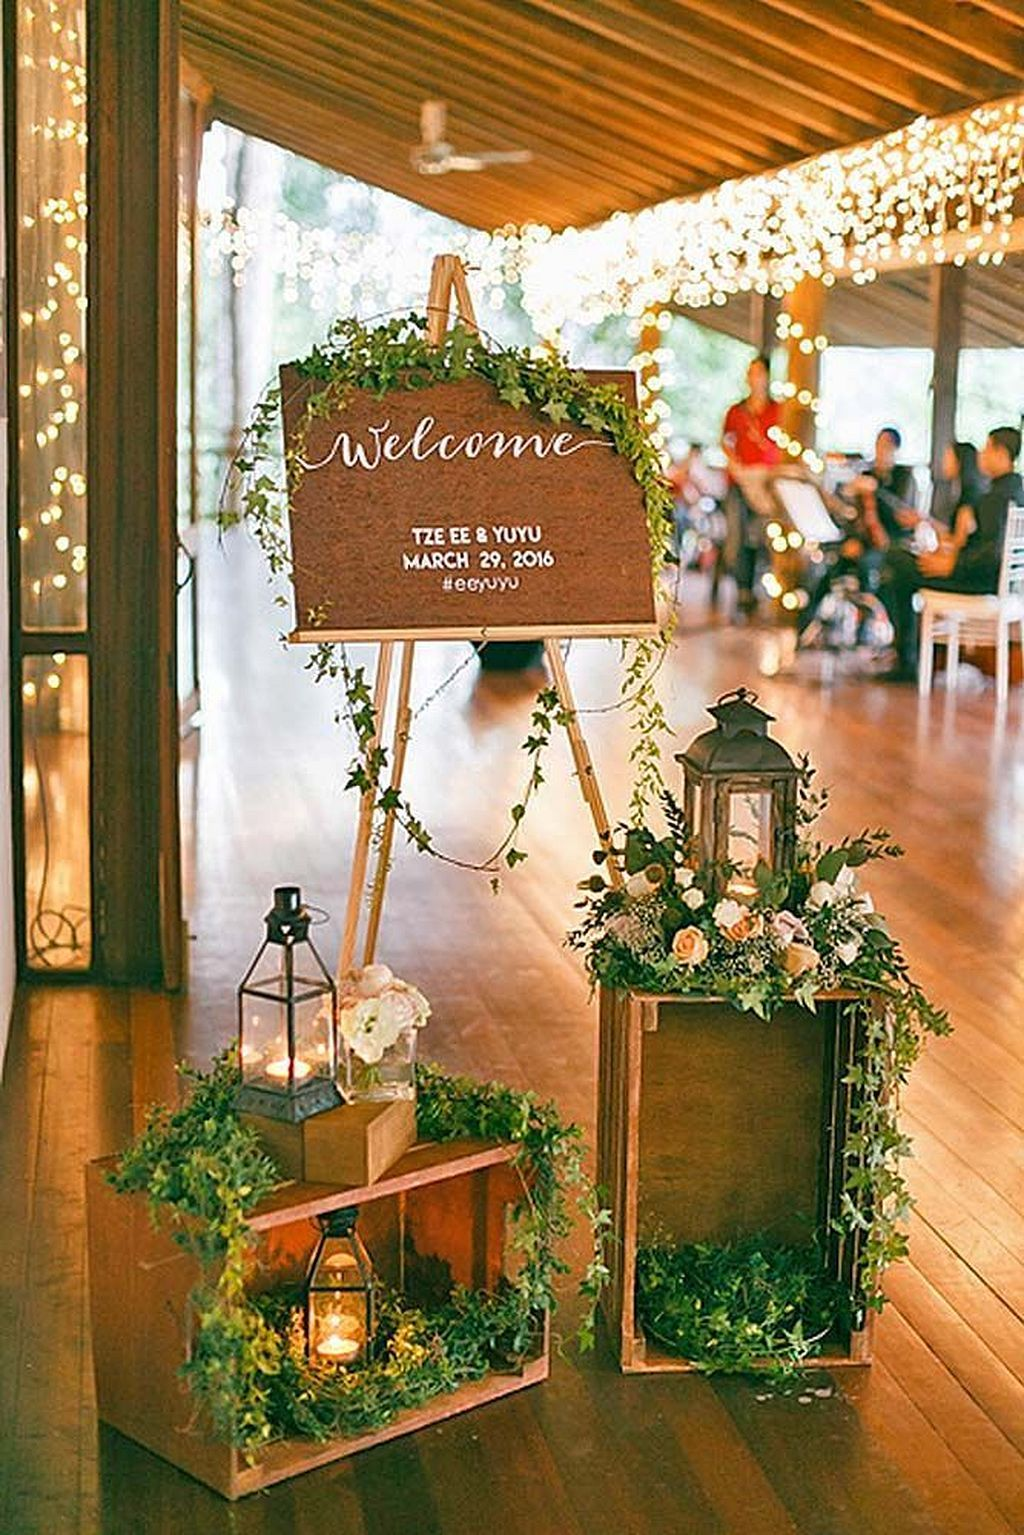 30 beautiful wedding entrance decor ideas entrance decor wedding amazing 30 beautiful wedding entrance decor ideas httpsweddmagz30 beautiful wedding entrance decor ideas junglespirit Image collections